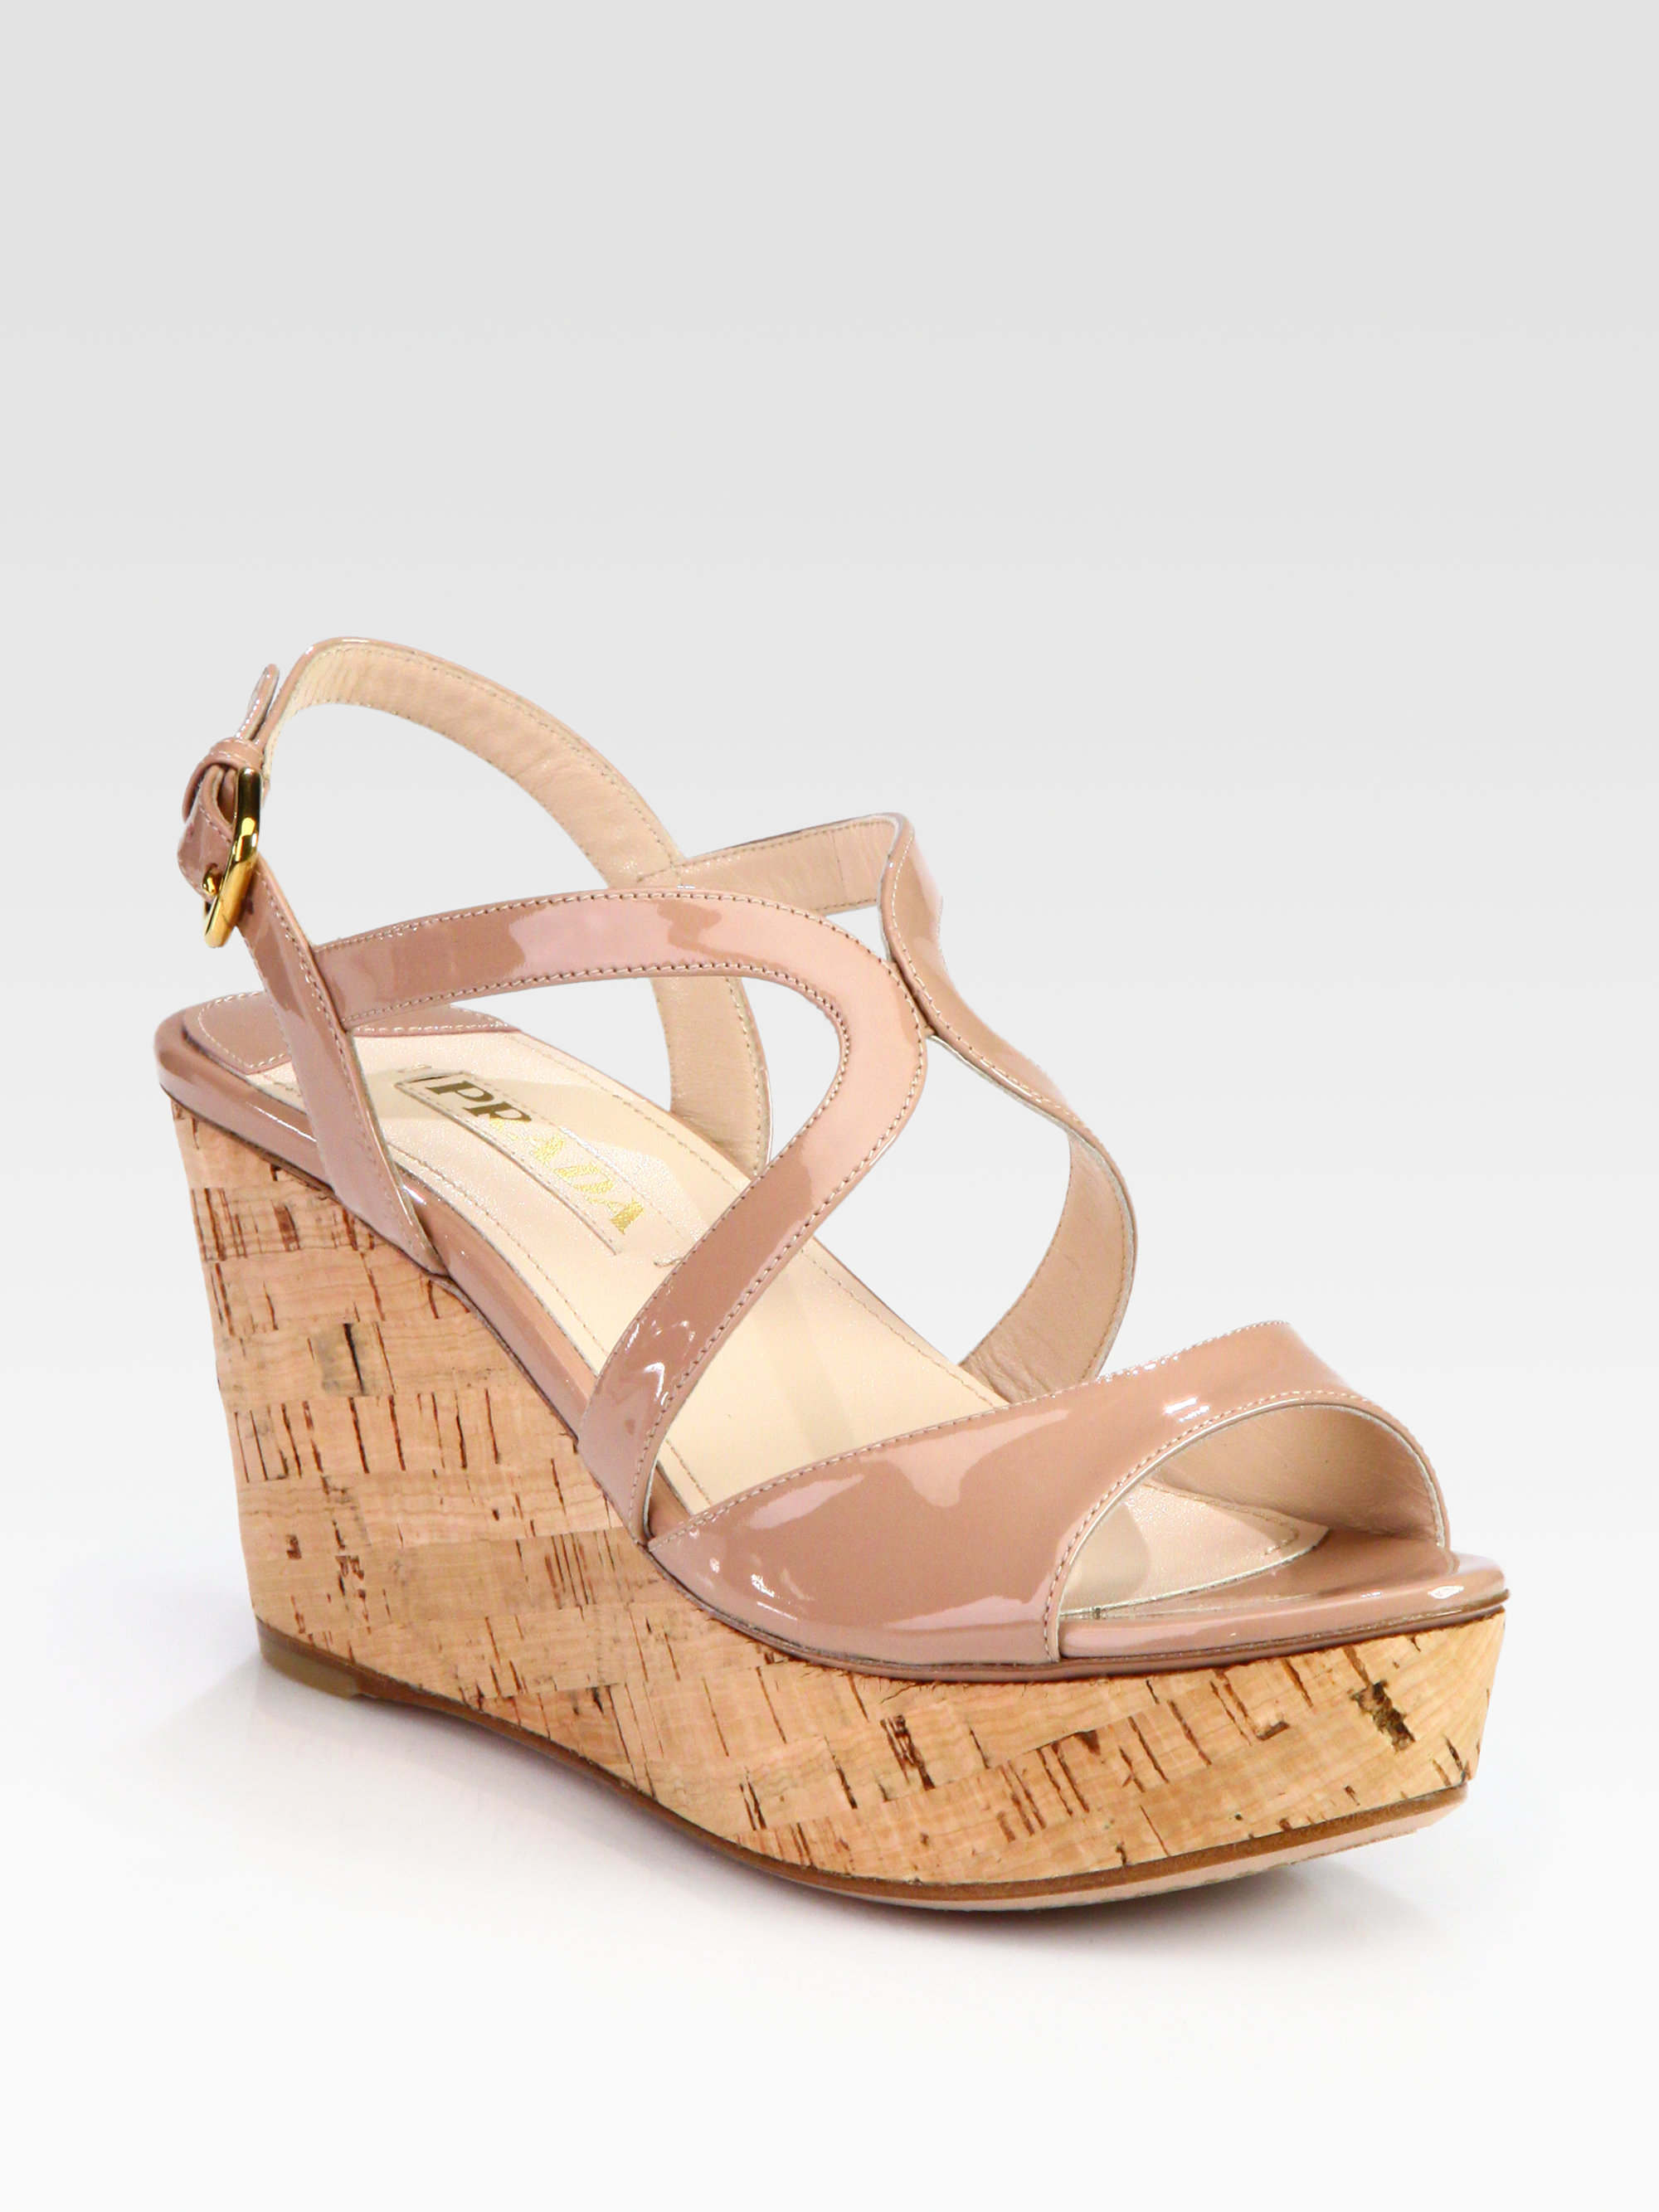 Prada Patent Leather and Cork Wedge Sandals in Beige (nude) | Lyst